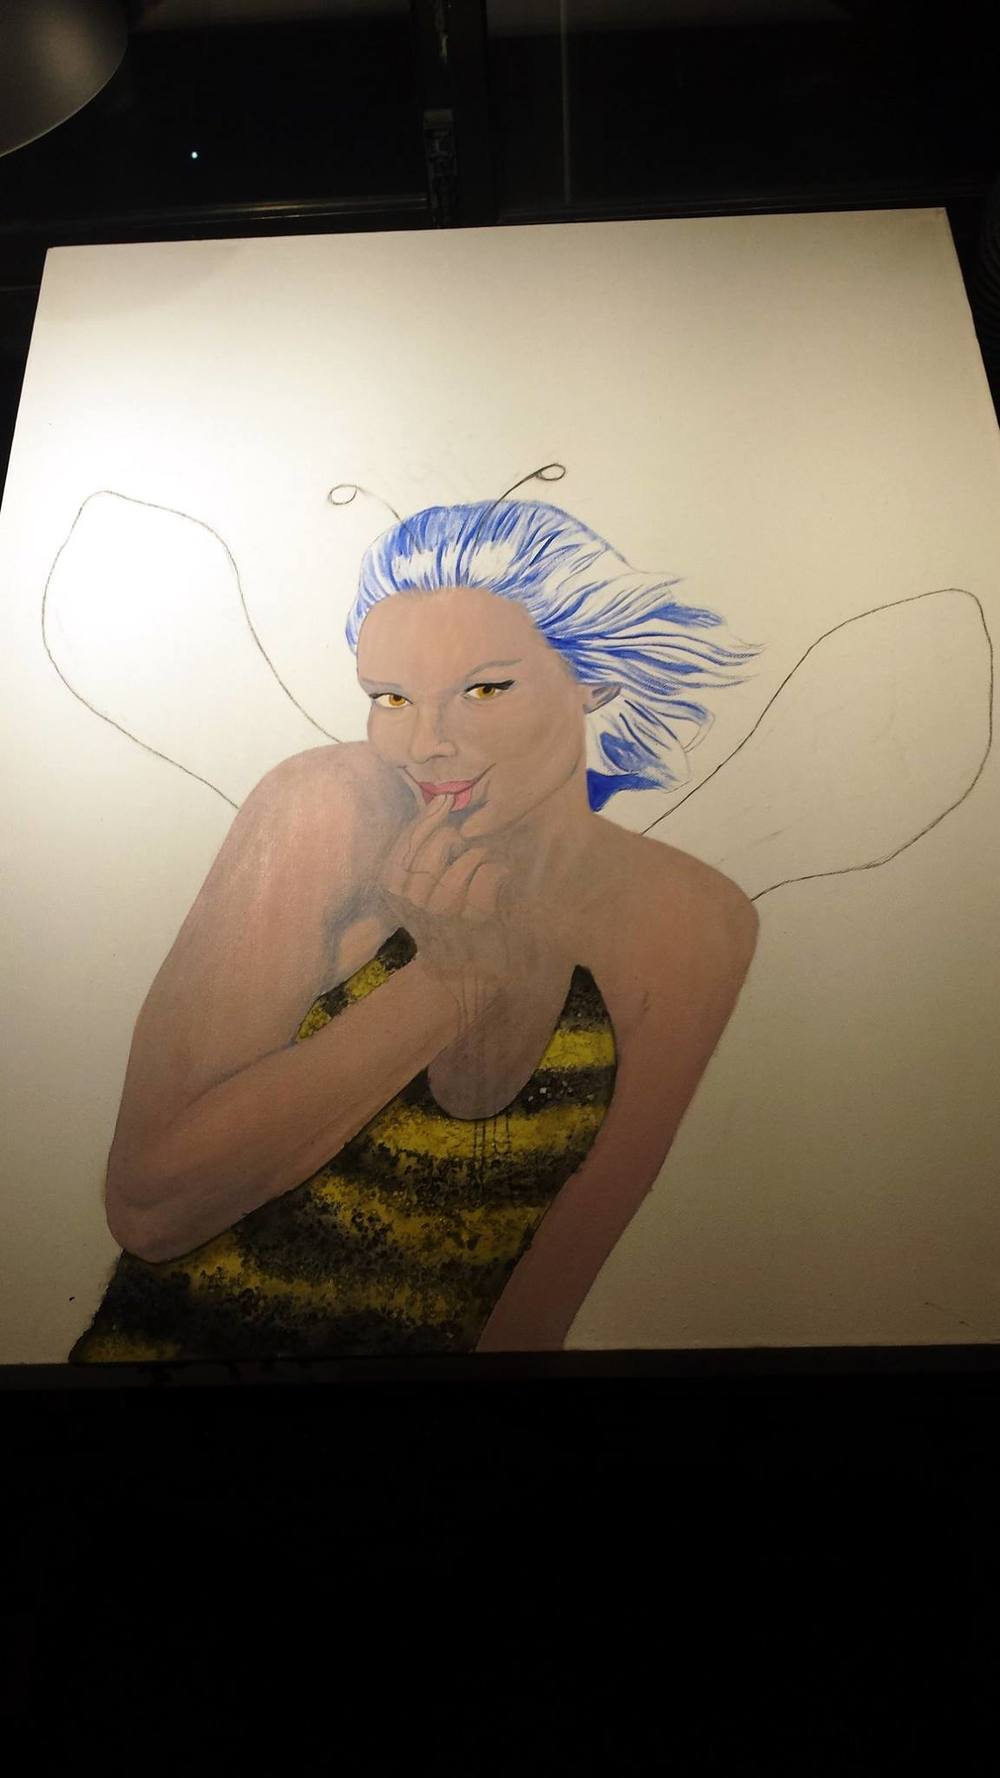 WIP#4 Buzzing dress, lips and eyes